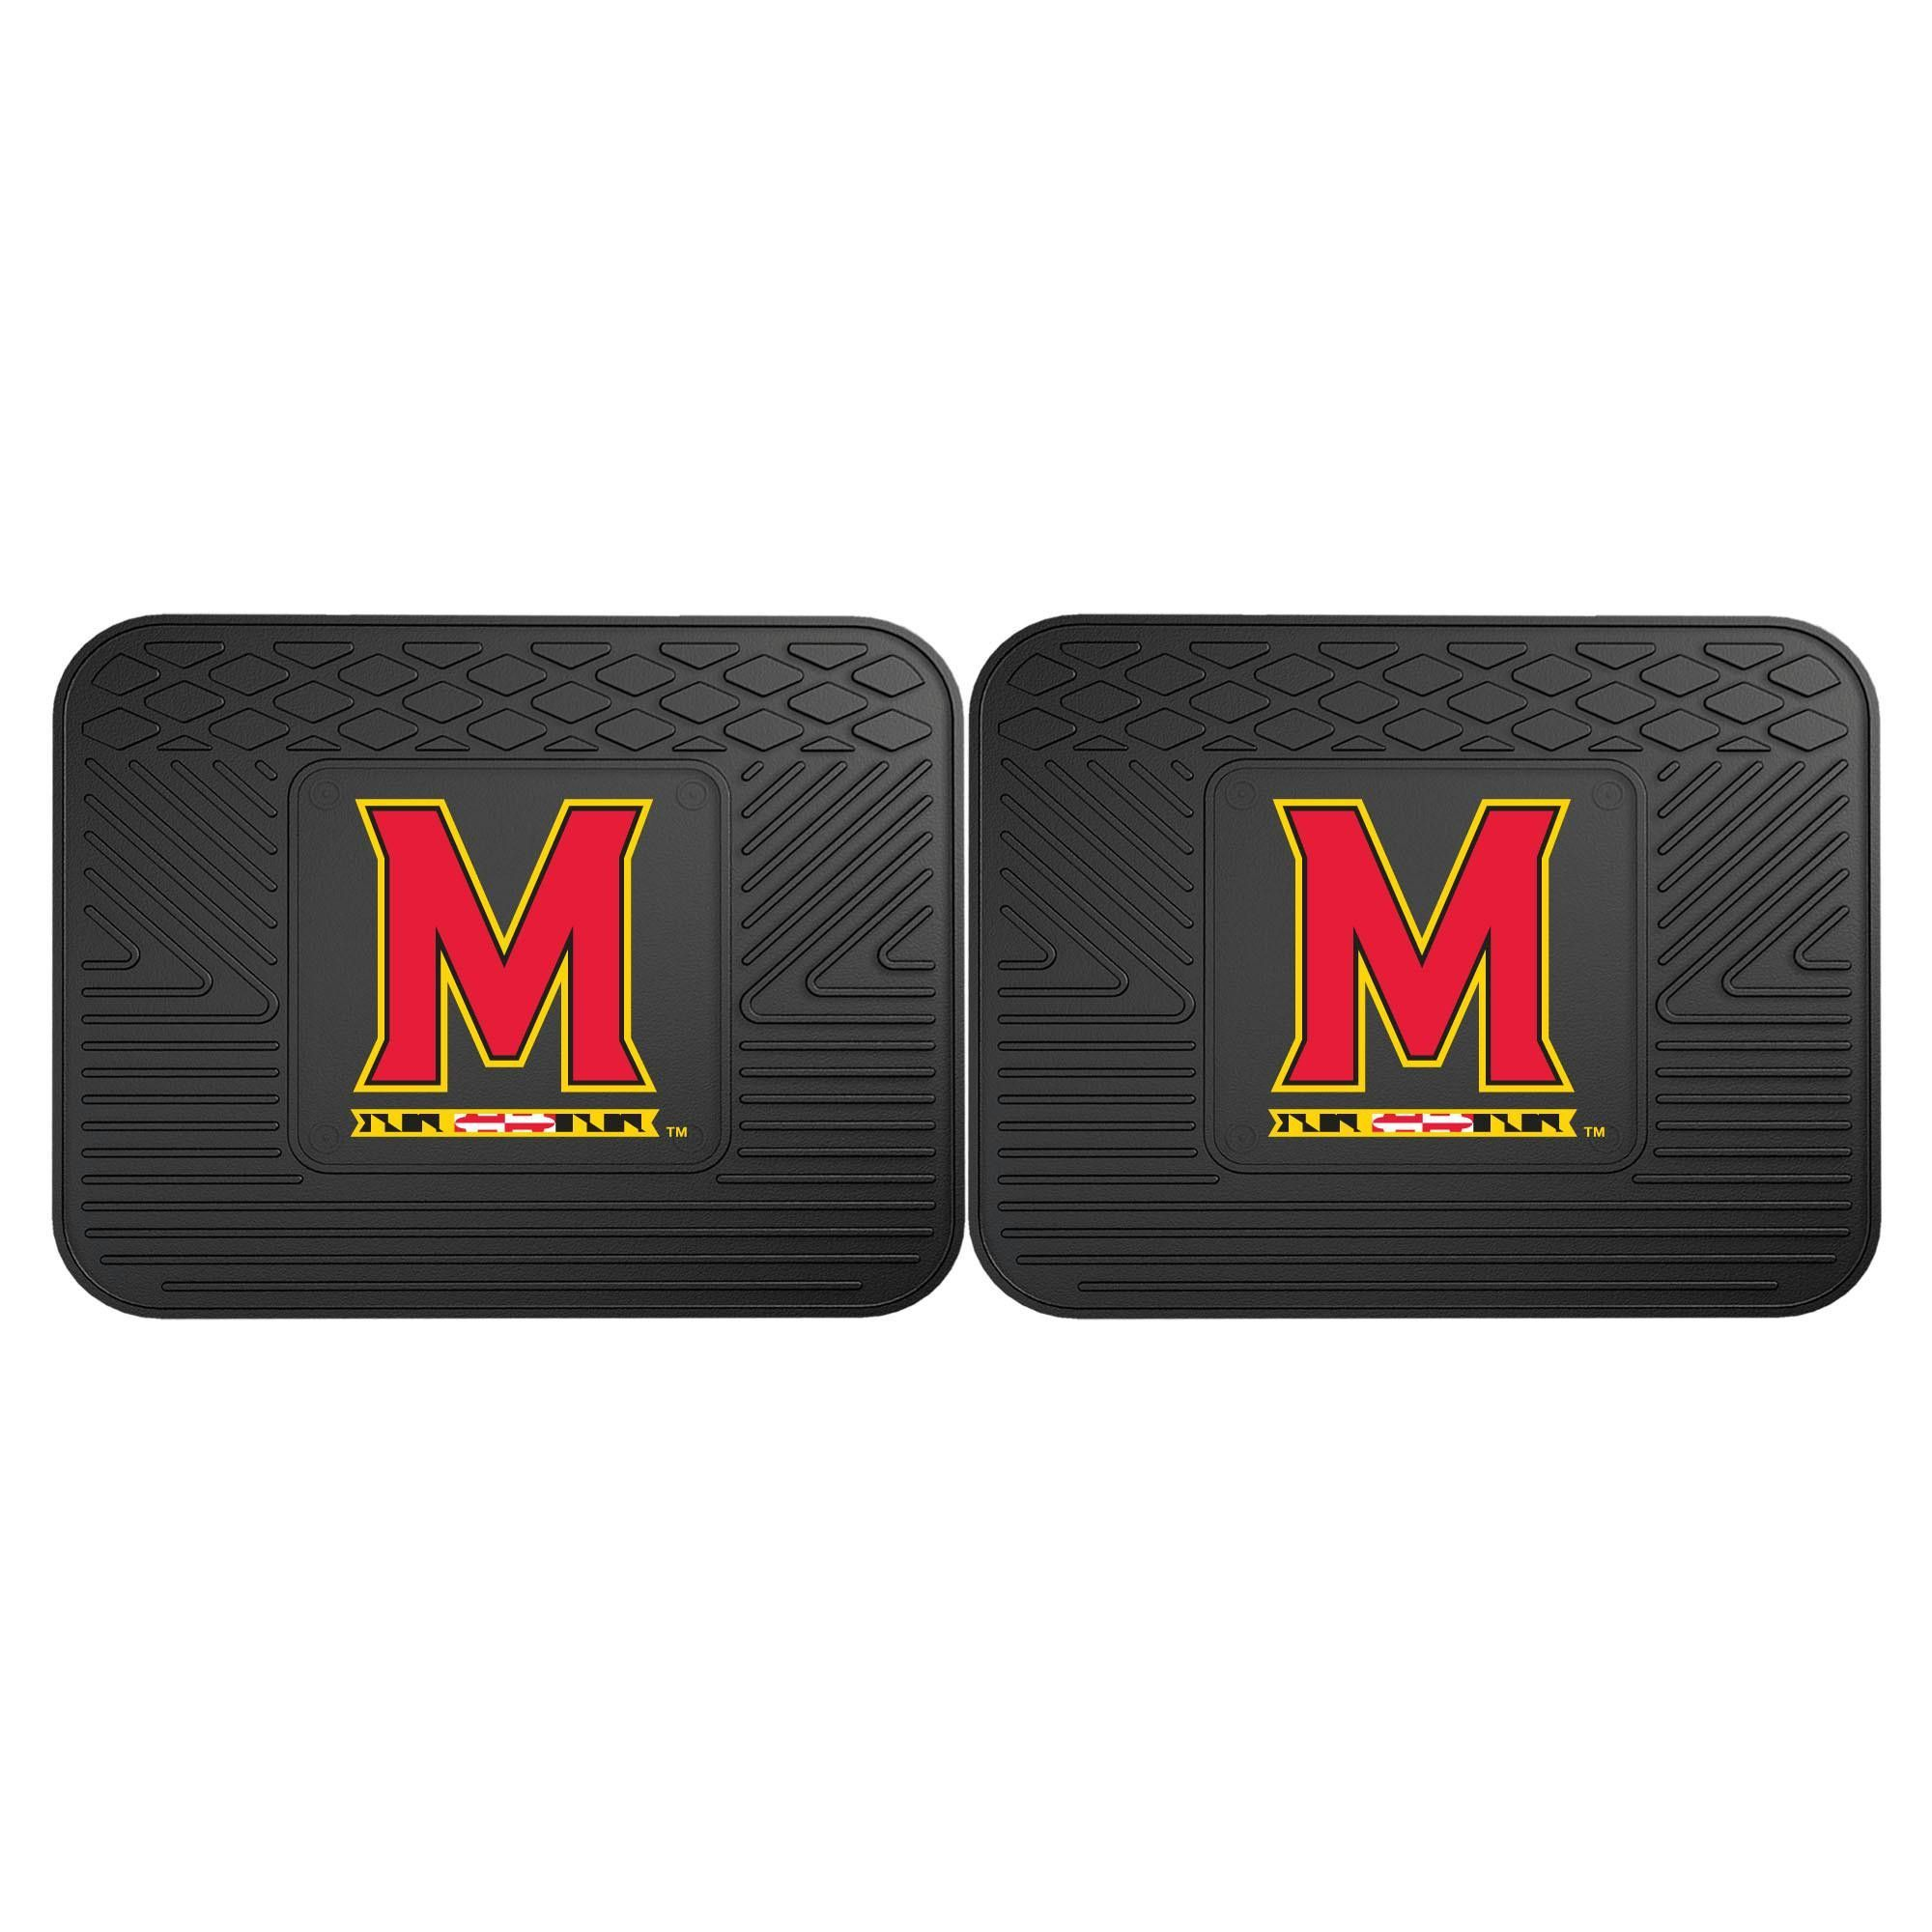 University of Maryland Backseat Utility Mats 2 Pack 14x17